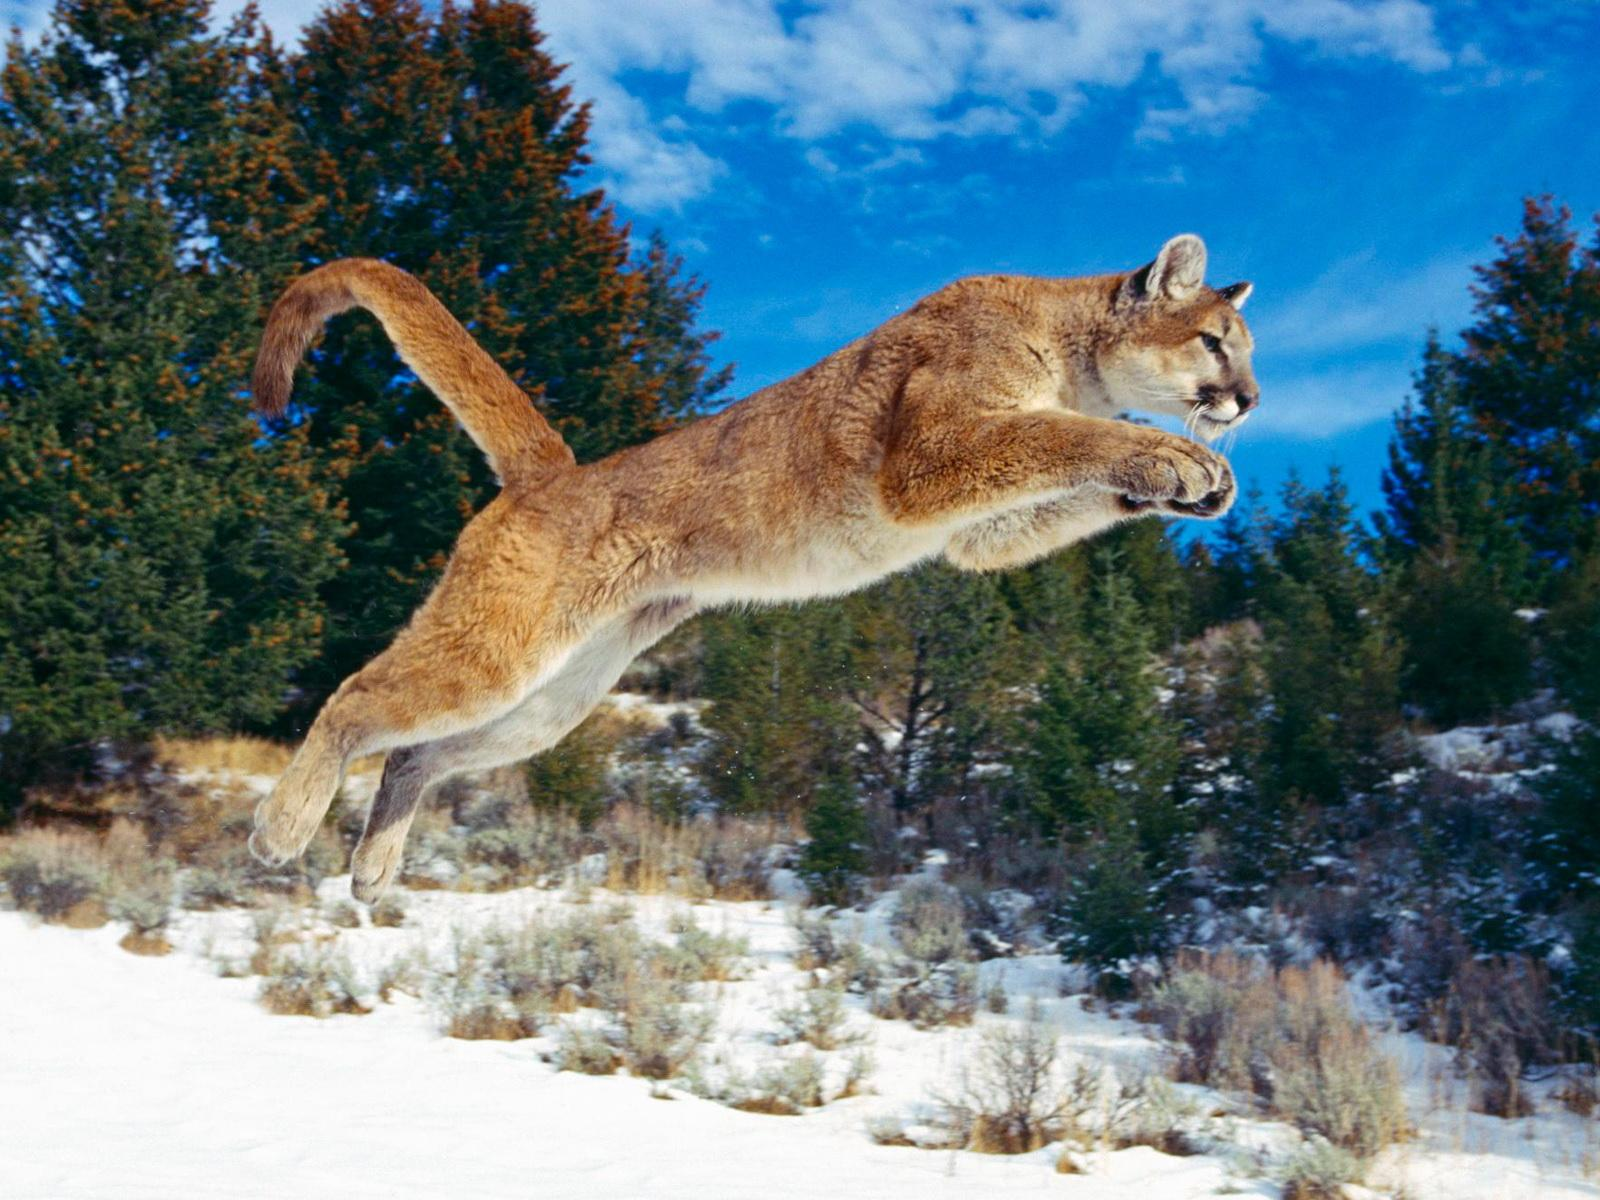 Bobcat Wallpaper: Hd Wallpapers Bobcats in Washington State Kb Jpeg 1600x1200px